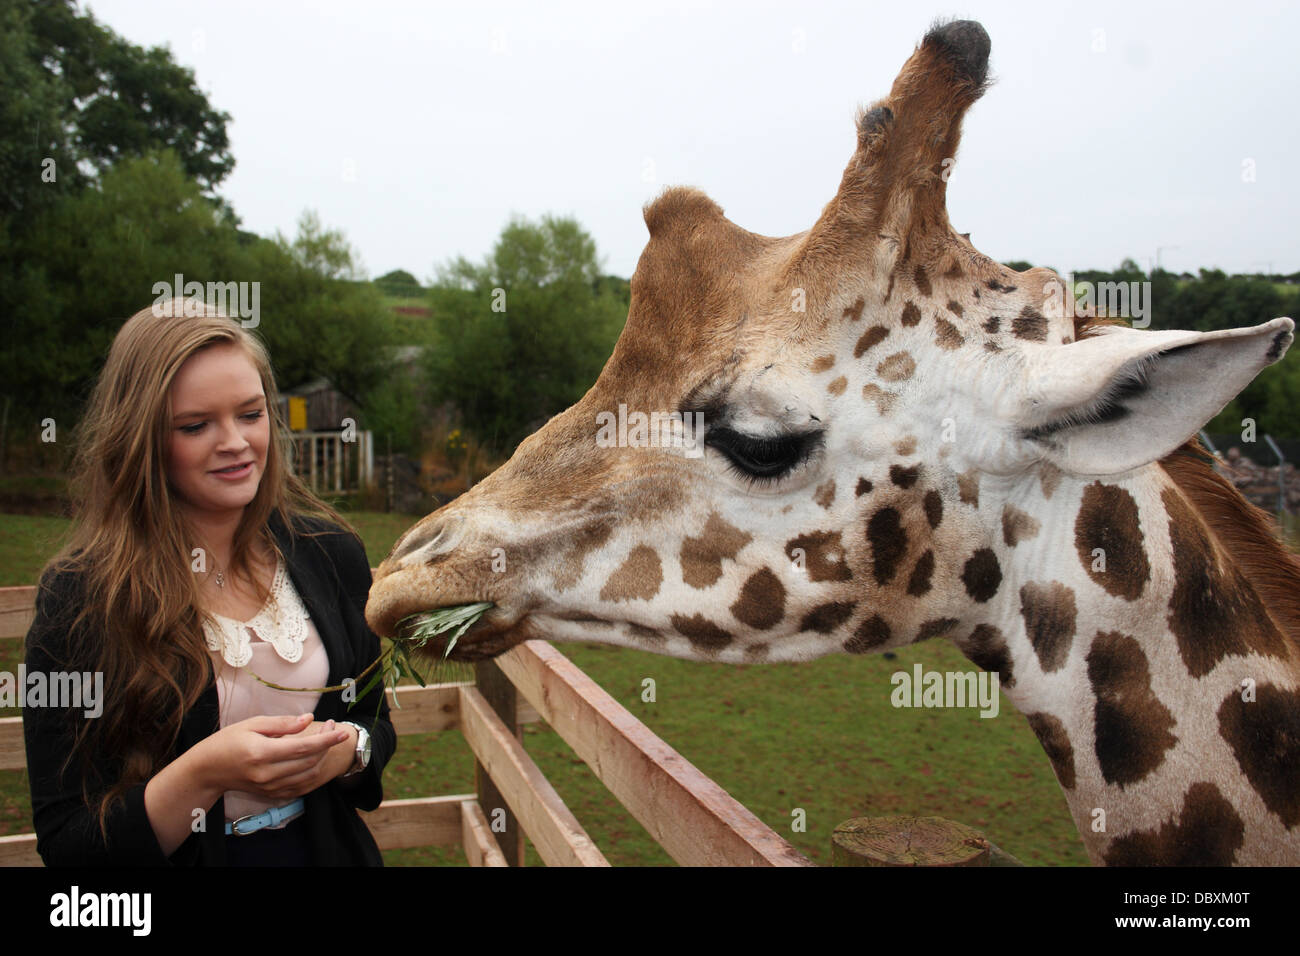 Young Woman Feeding A West African Giraffe From Her Hands